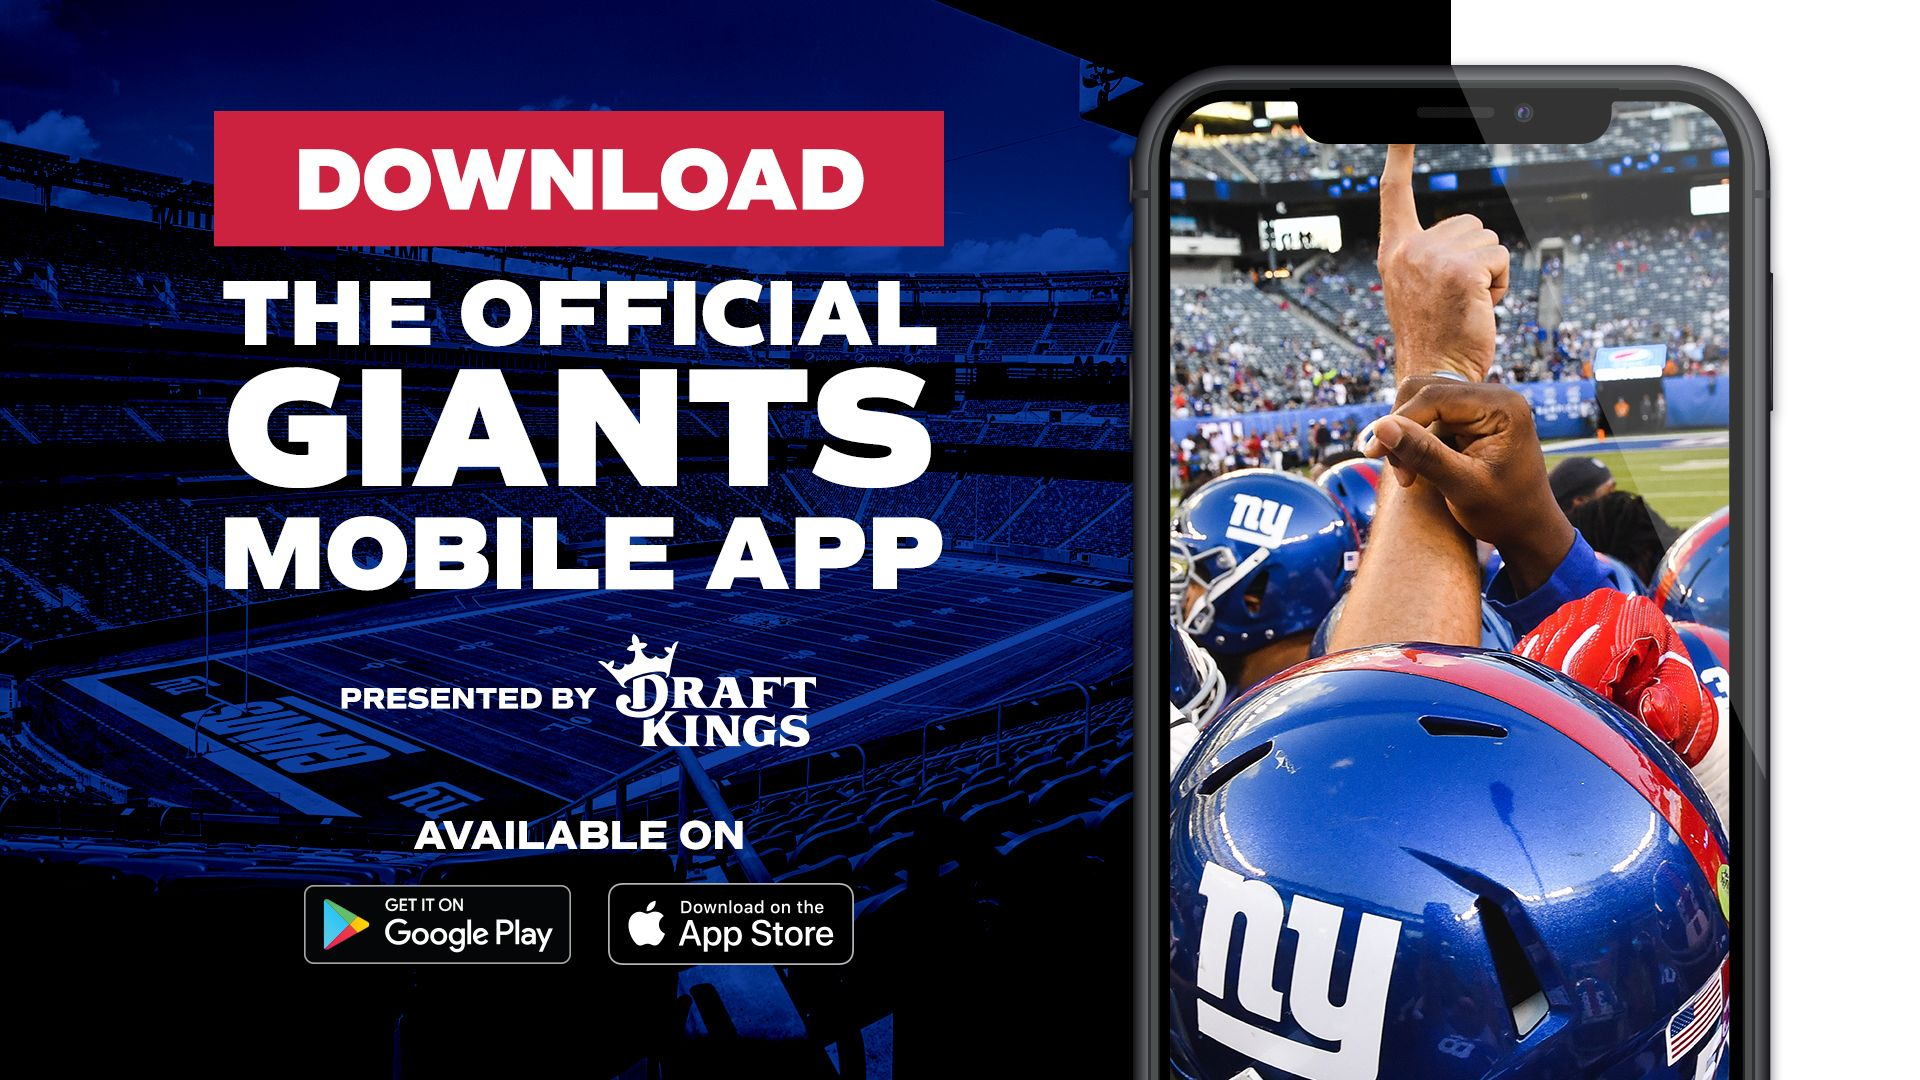 NYG_Website_Ads_APP_1920x1080 (1)